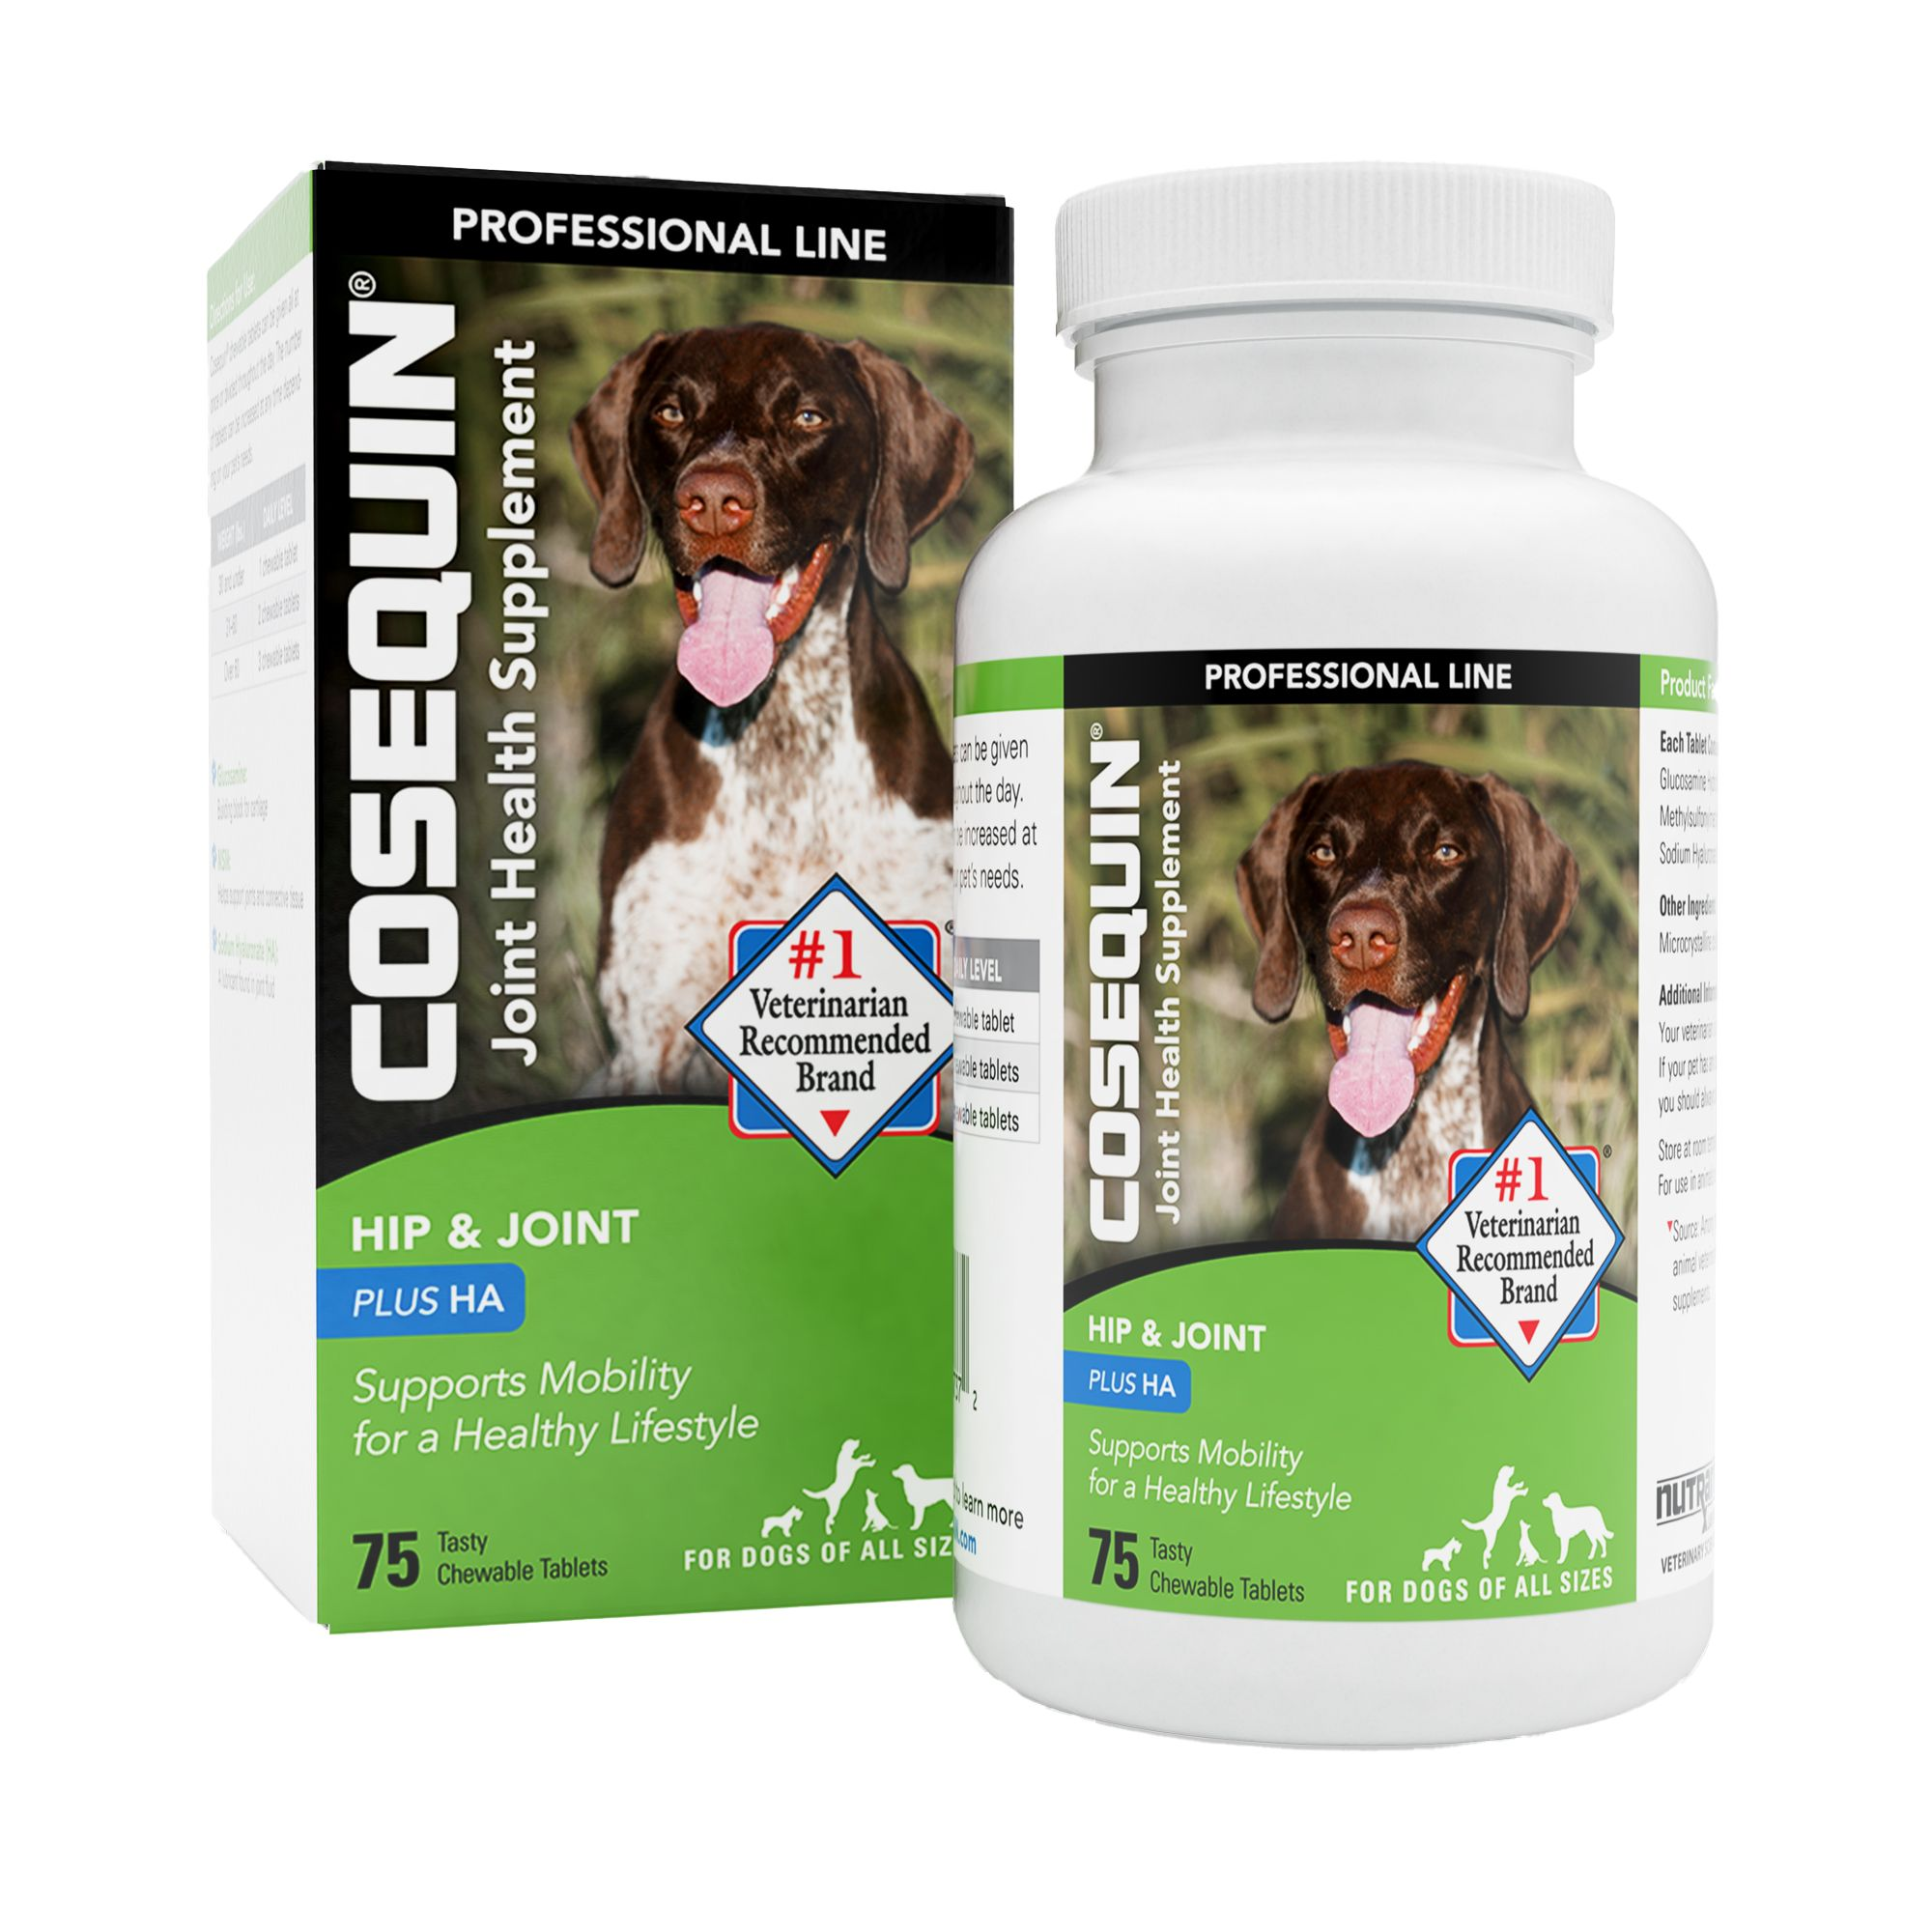 Cosequin Nutramax Professional Joint Health Dog Supplement Size 75 Count Nutramax Laboratories